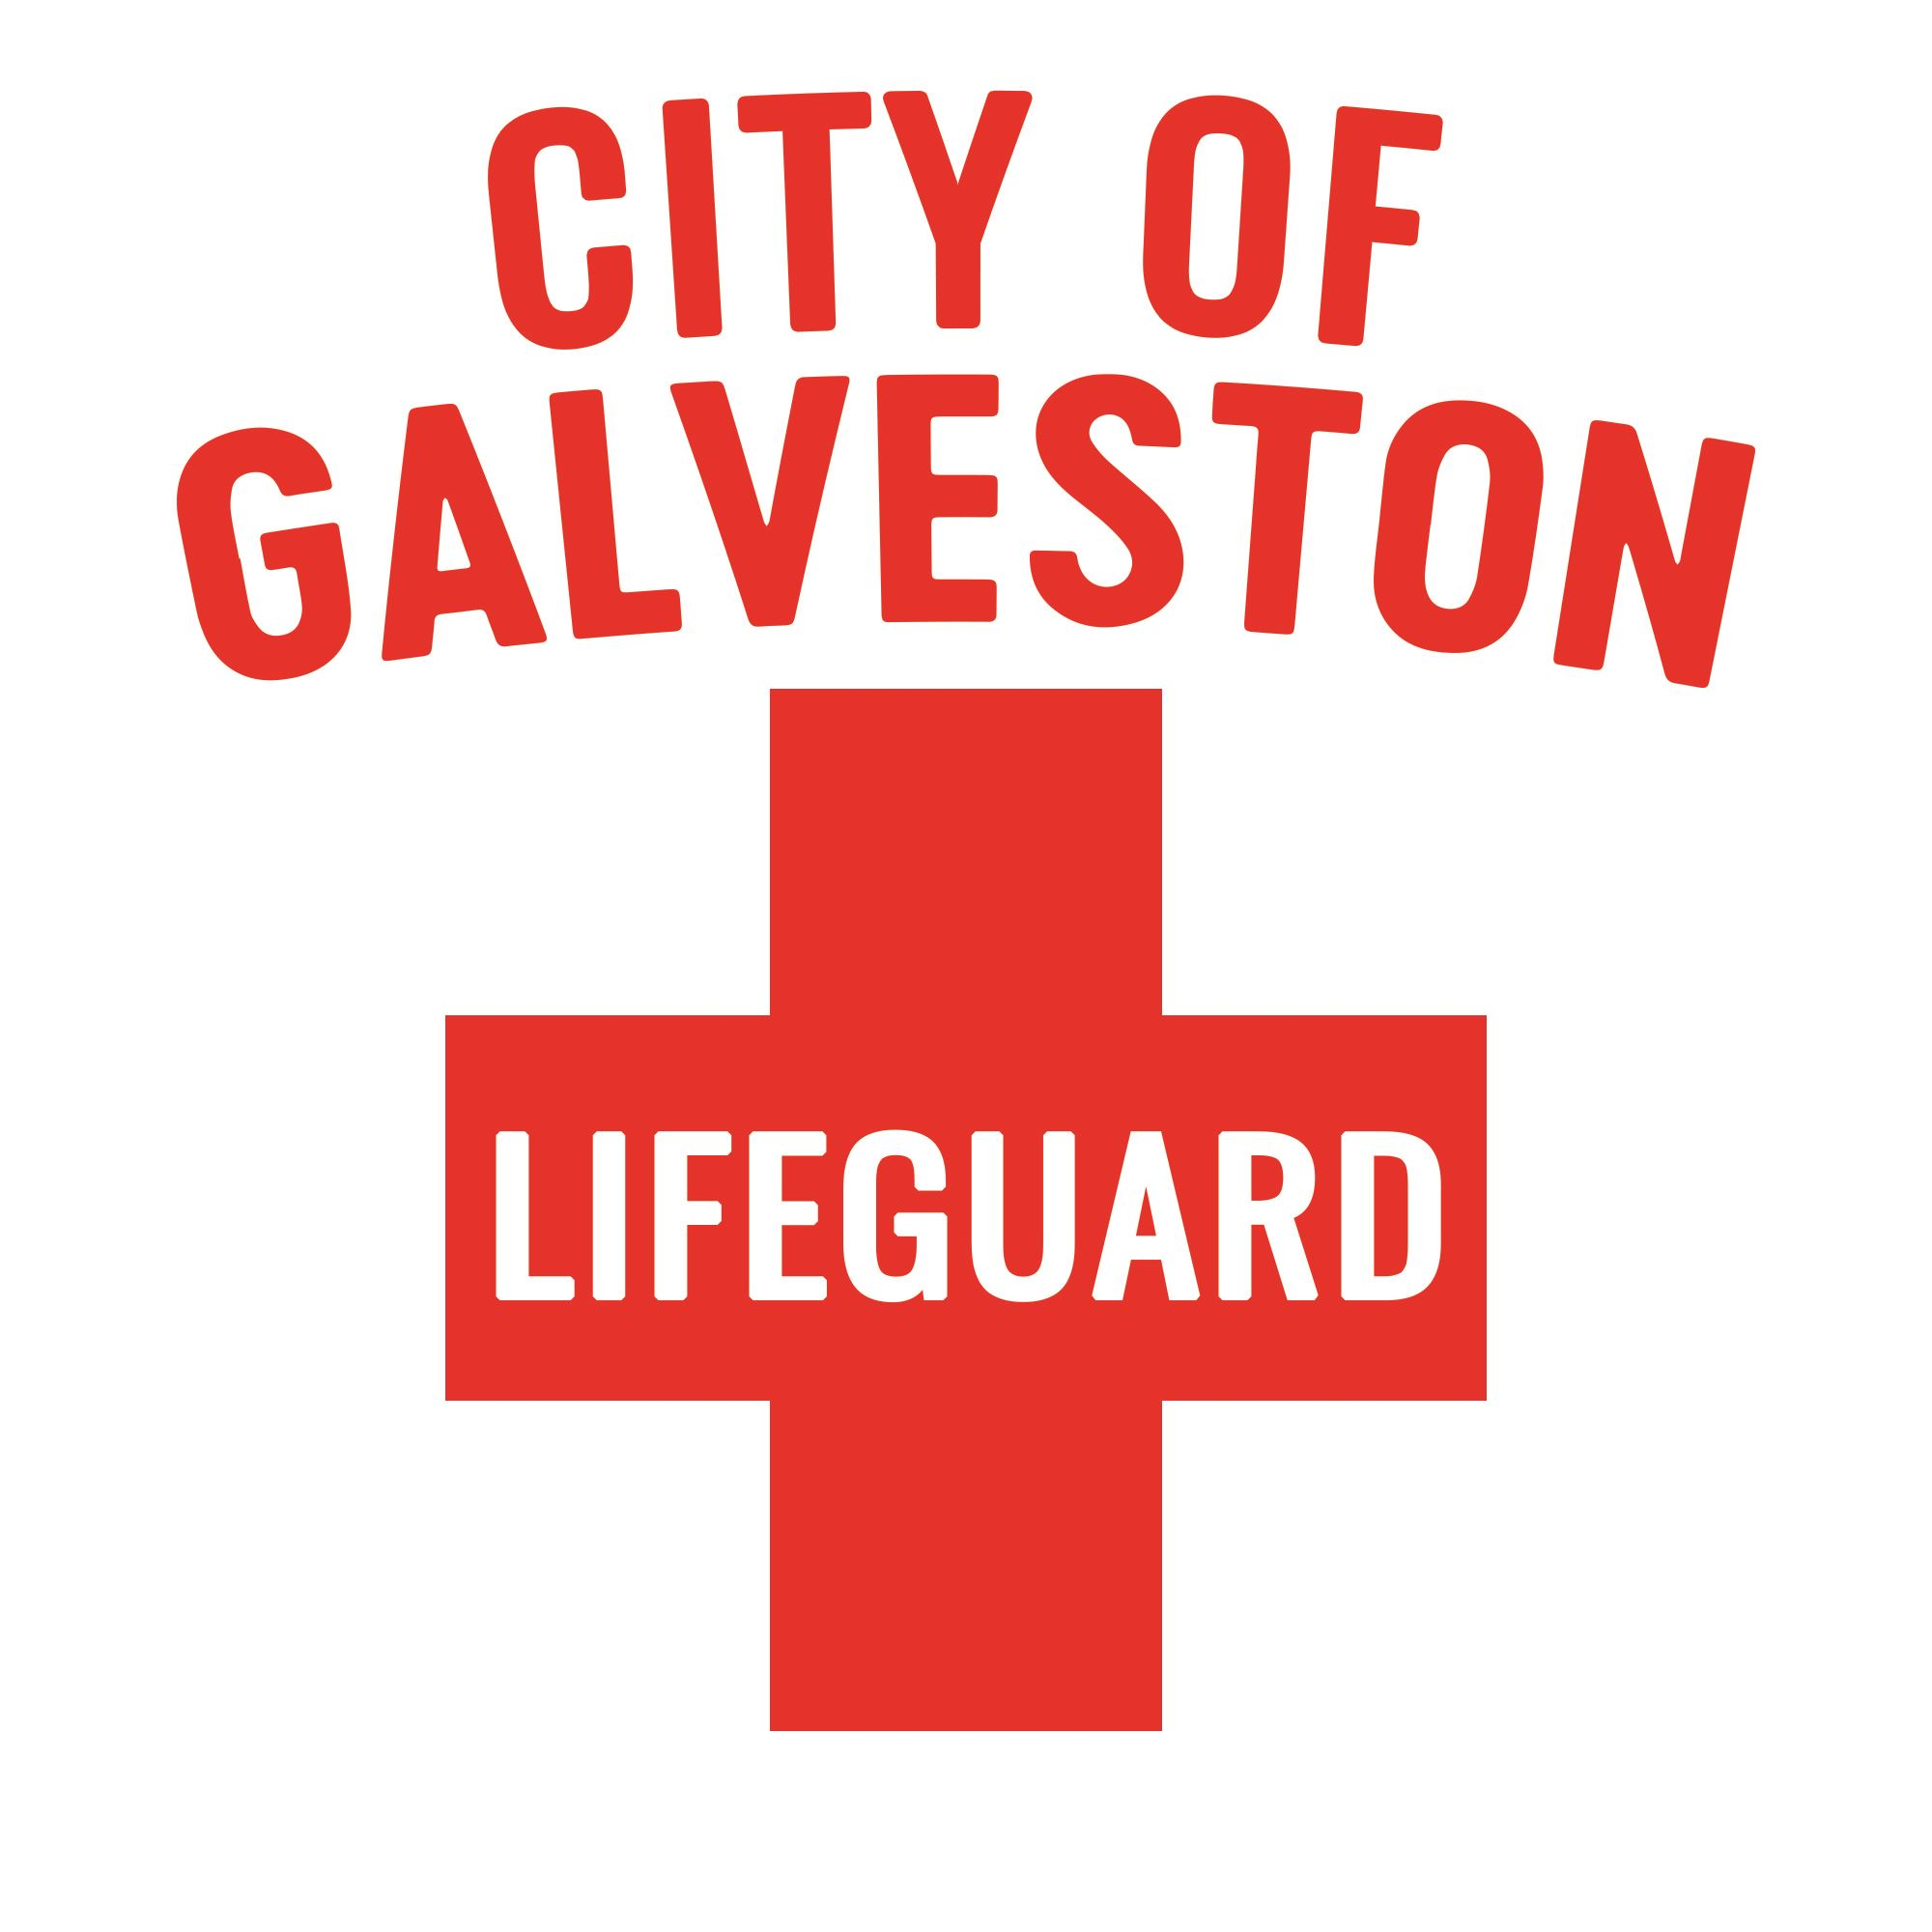 galvestonlifeguardoption1